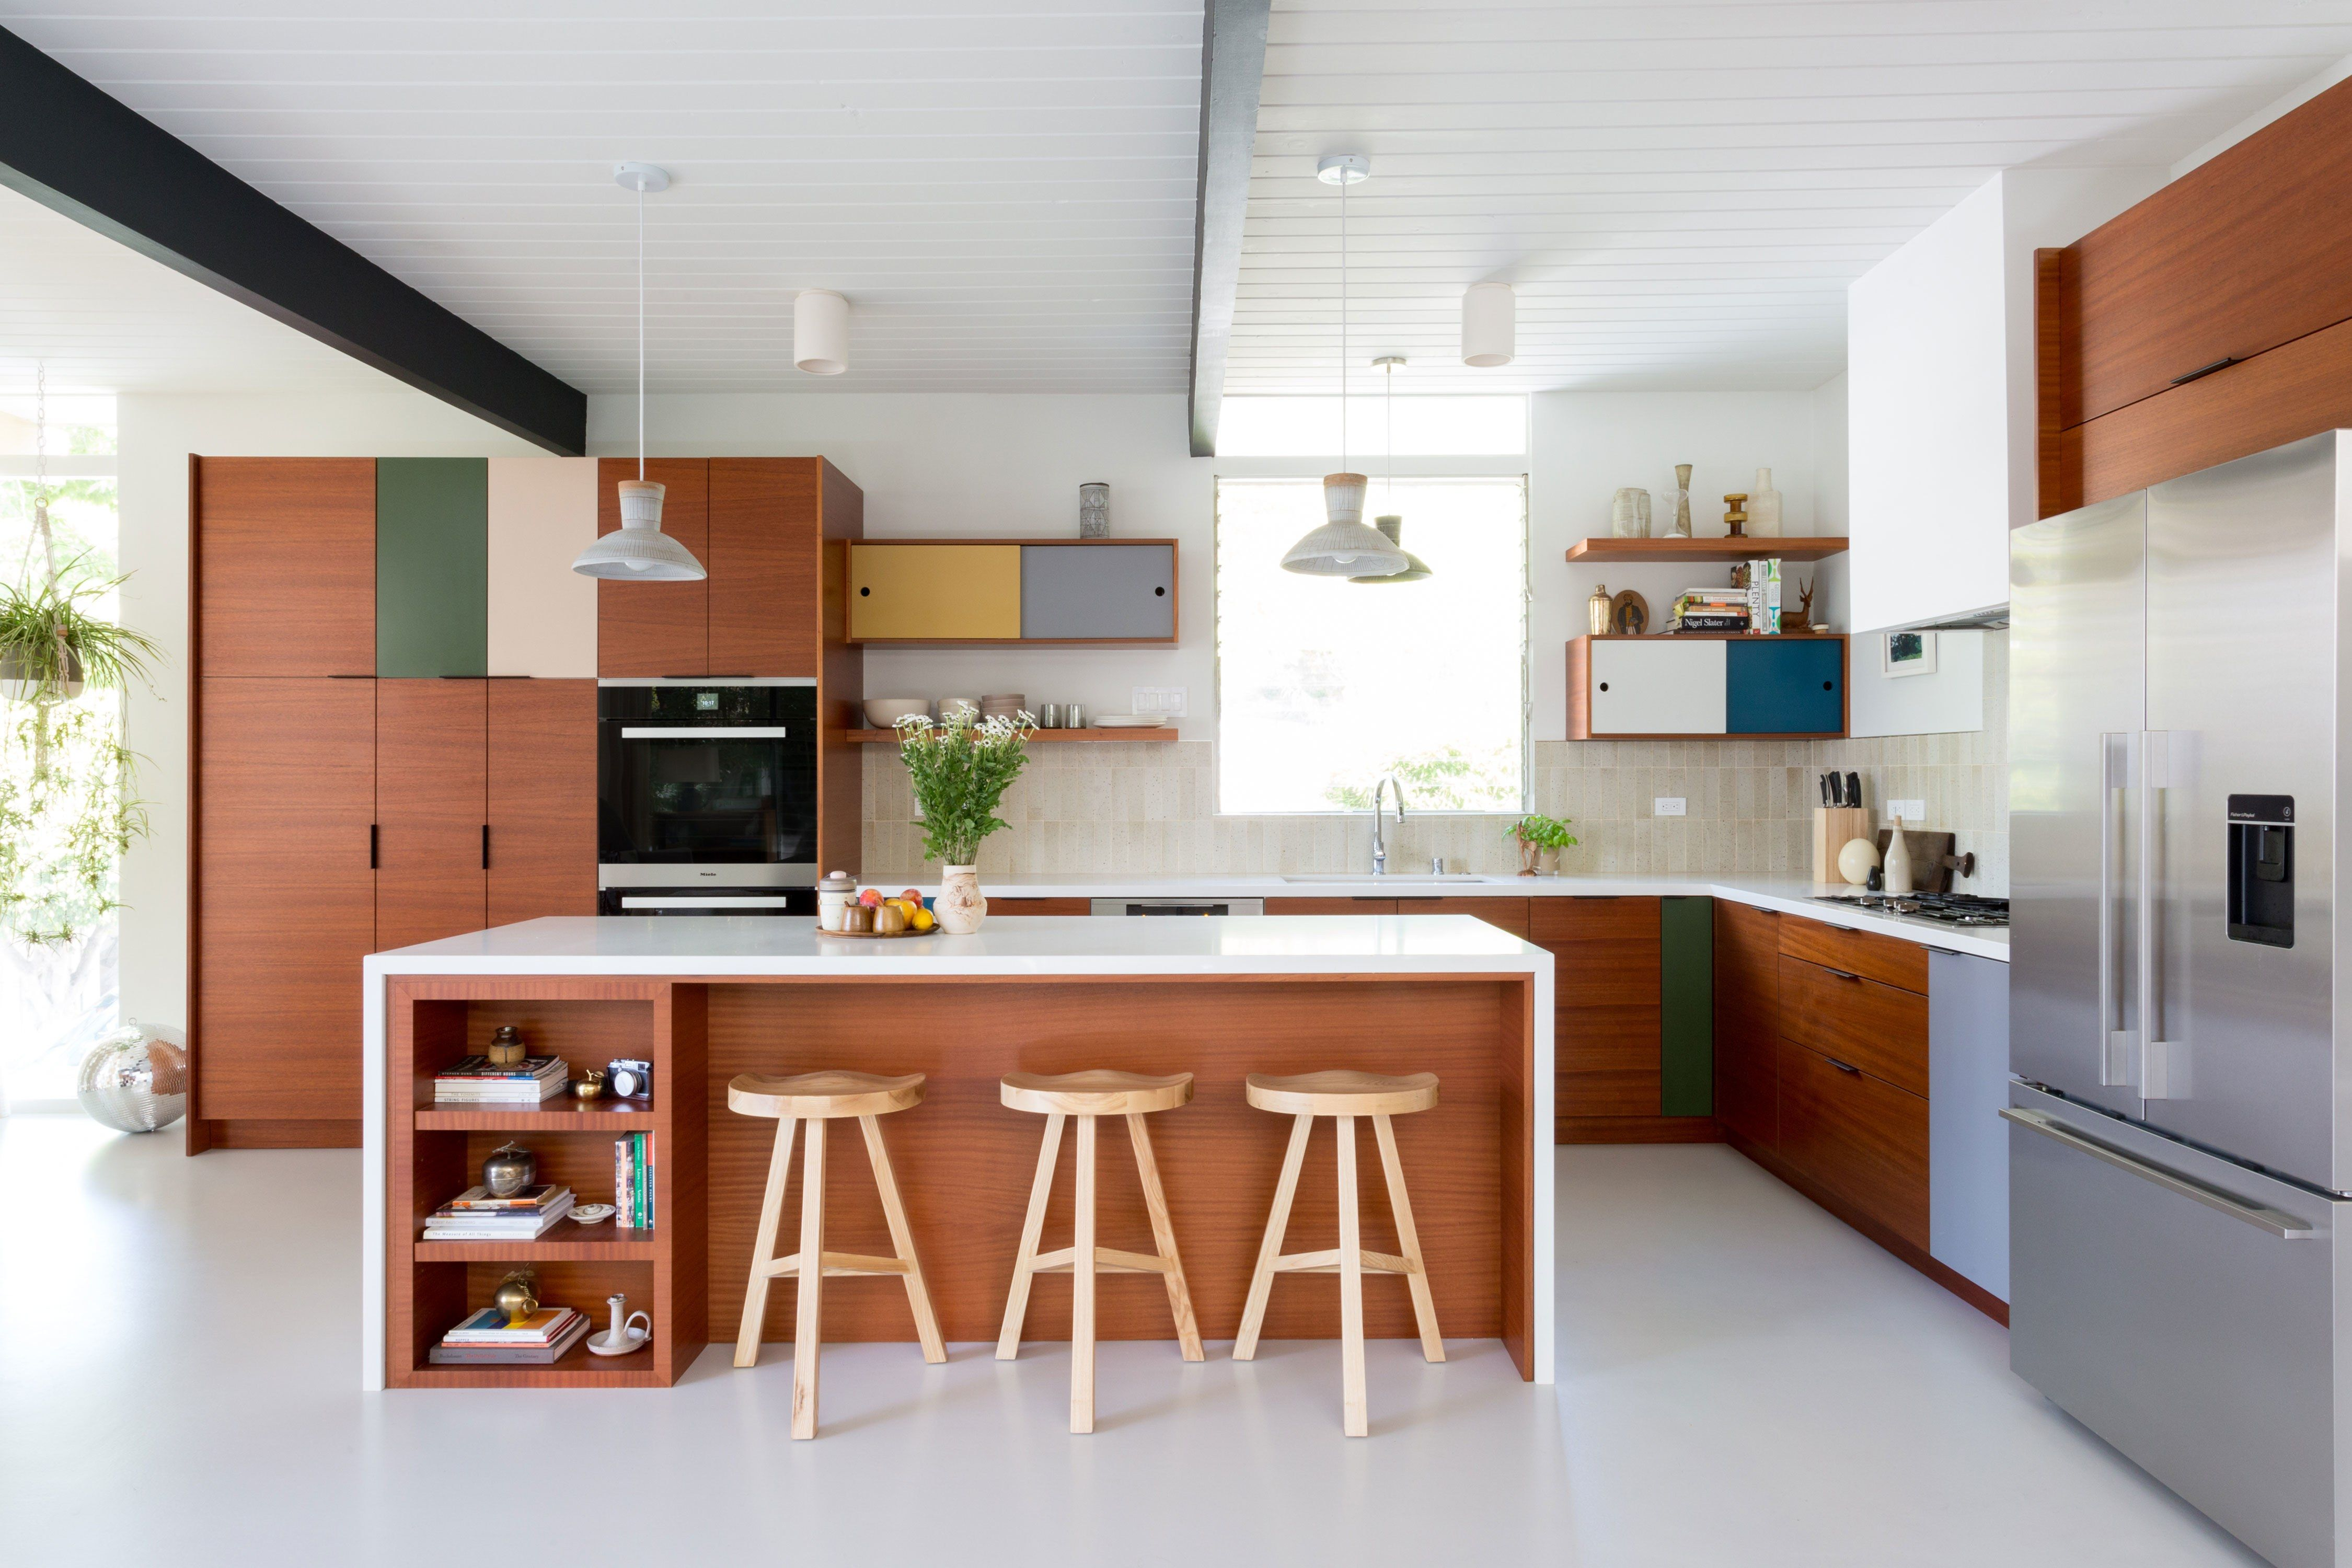 ikea axstad Google Search in 2019 Diy kitchen remodel